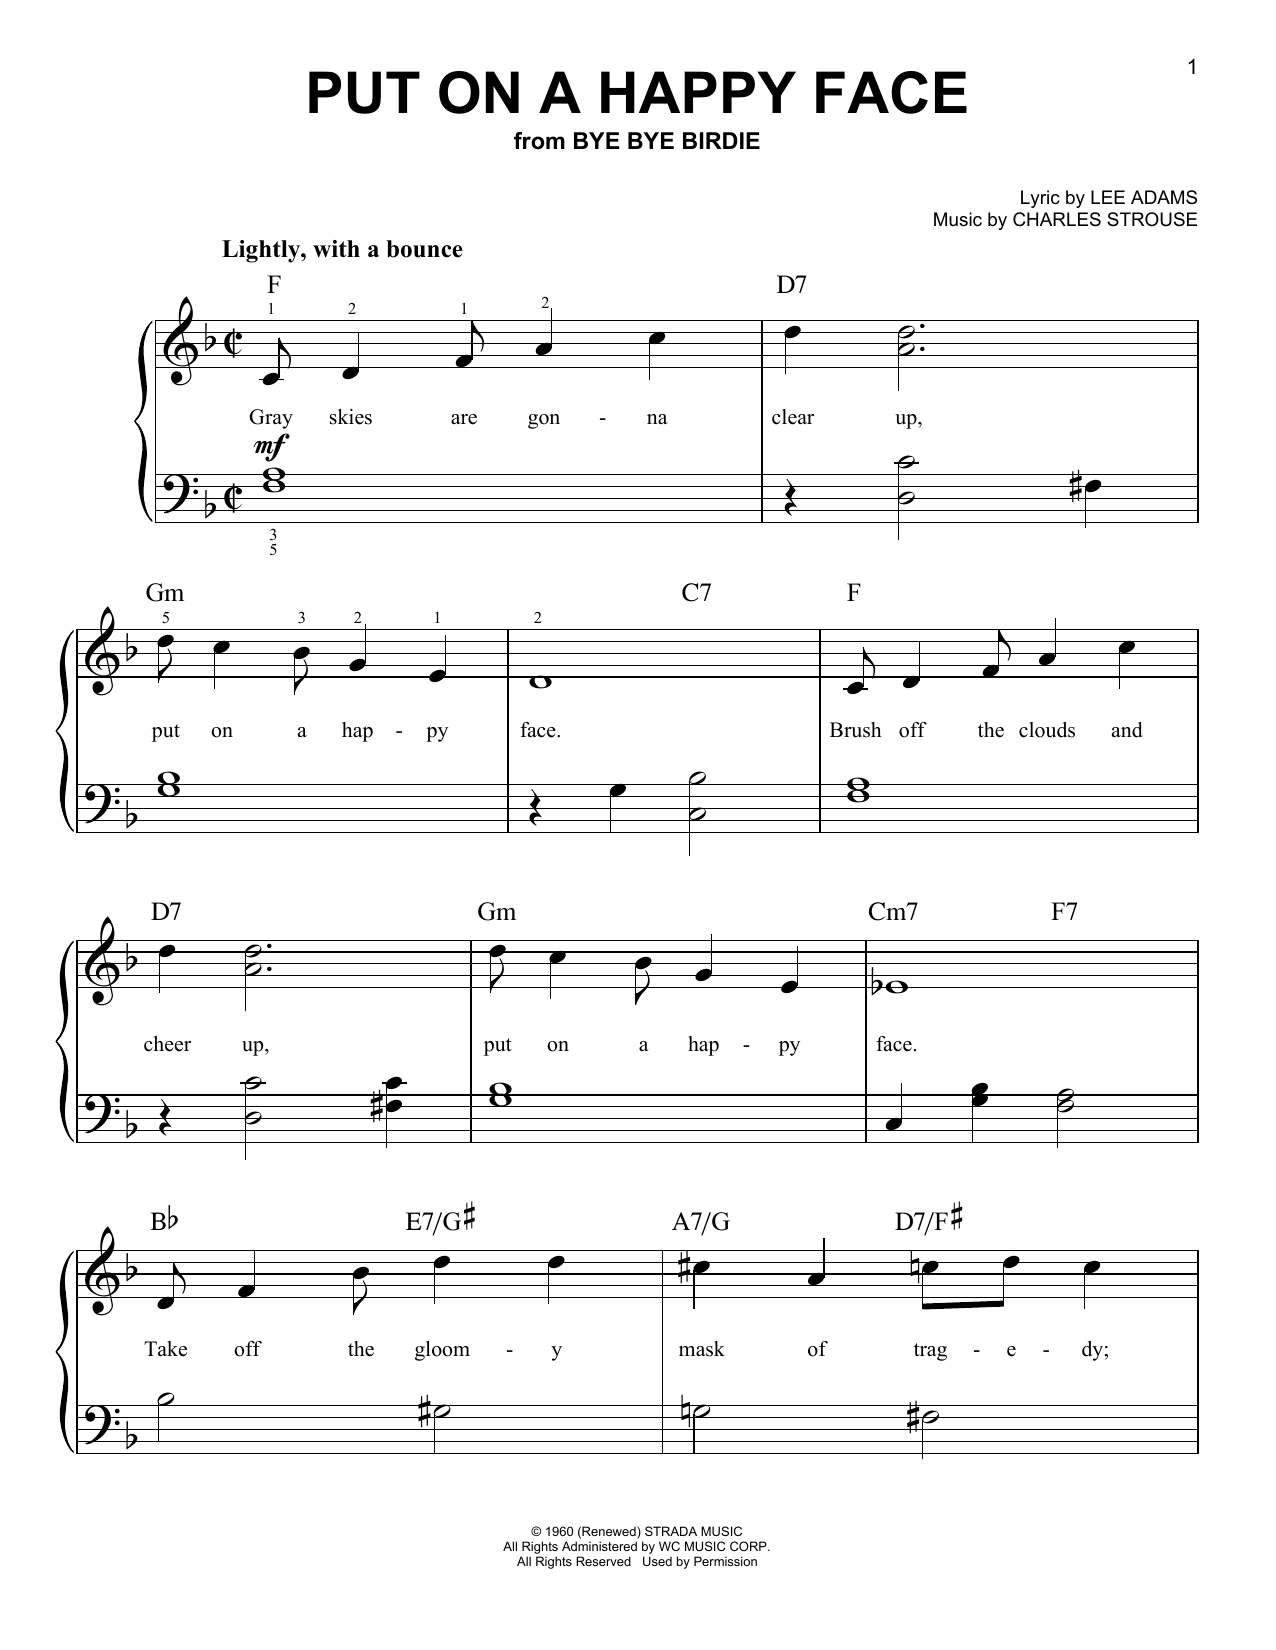 Put On A Happy Face sheet music for piano solo (chords) by Charles Strouse